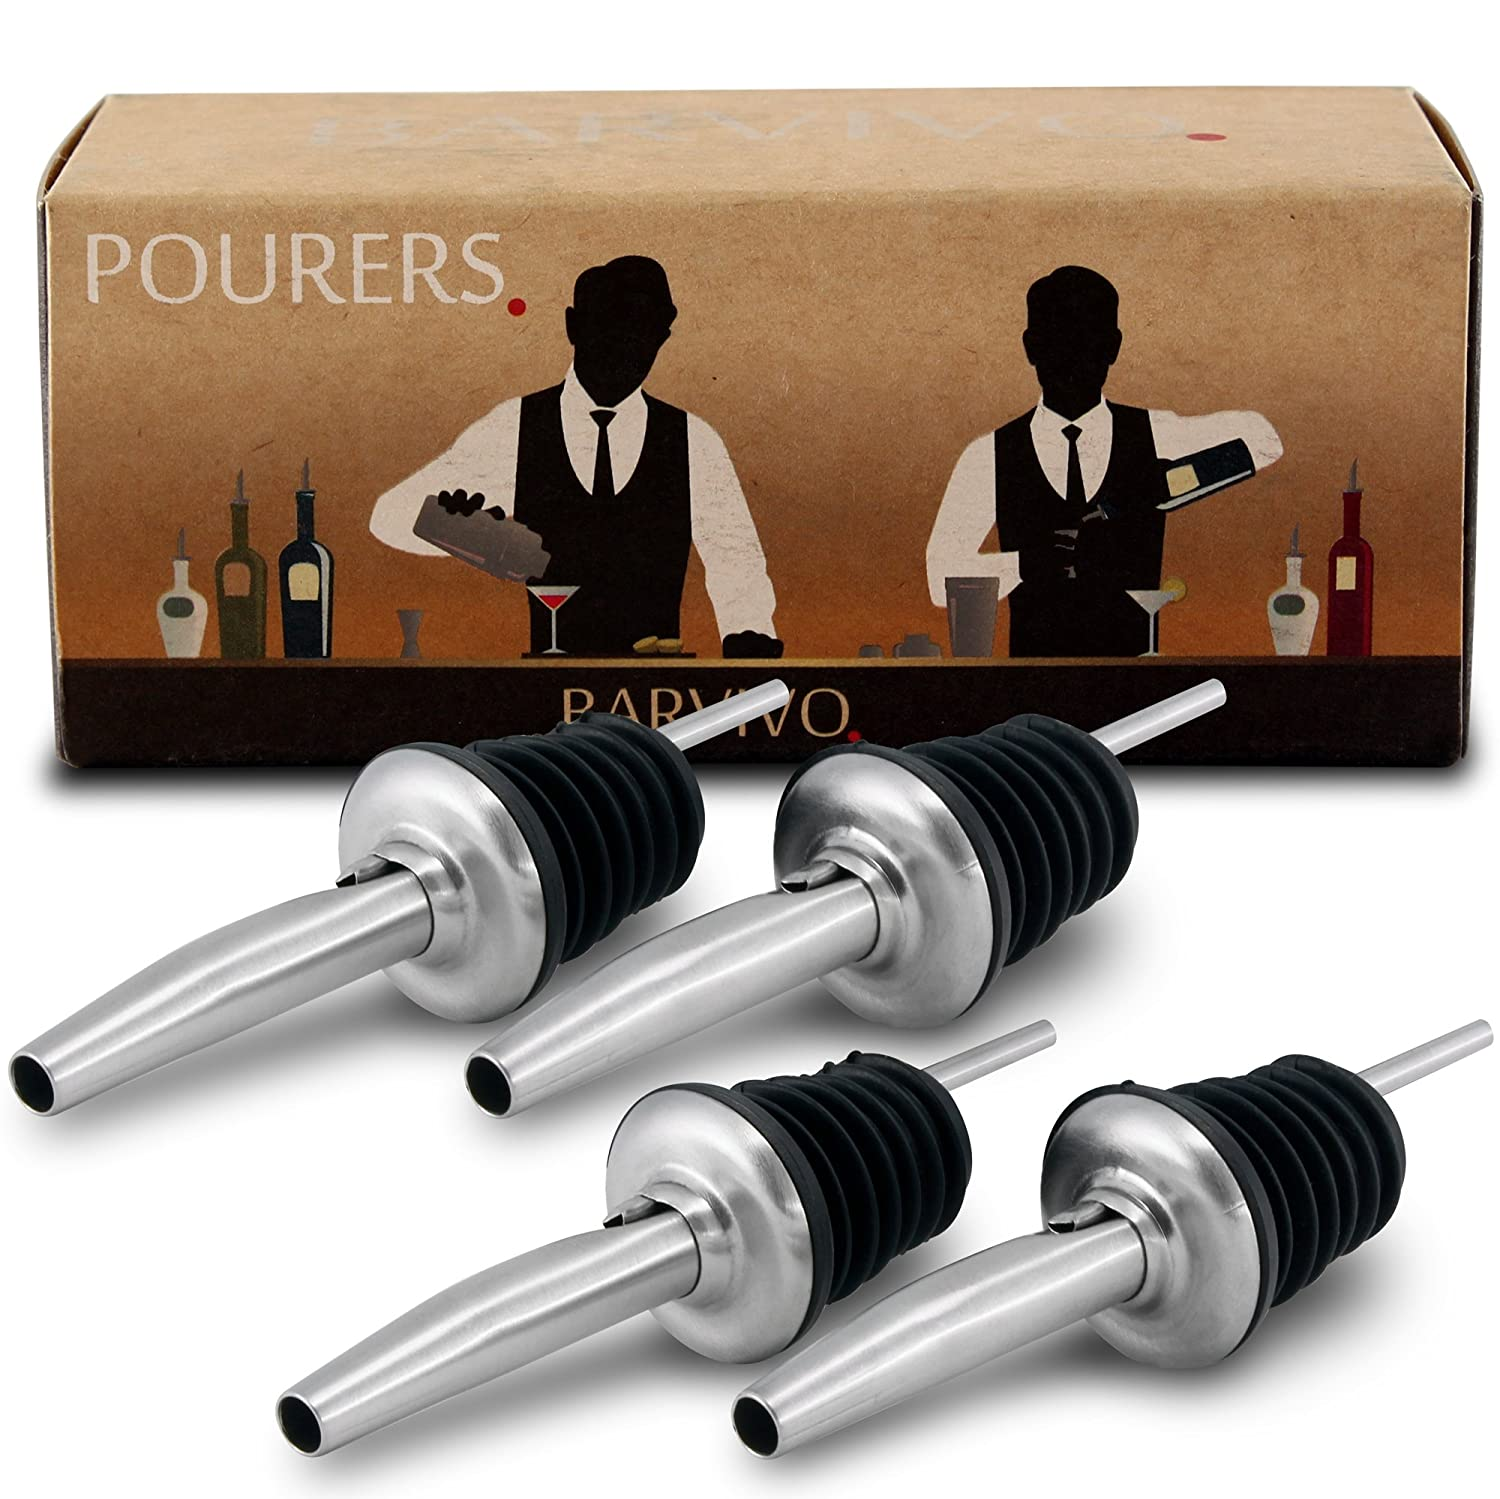 Professional Liquor Pourers Set of 4 by Barvivo - Classic Free Flow Bartender Bottle Pourer w/Tapered Spout, Fits Alcohol Bottles up to 1l. - Best for Pouring Wine, Spirits, Syrup and Olive Oil.